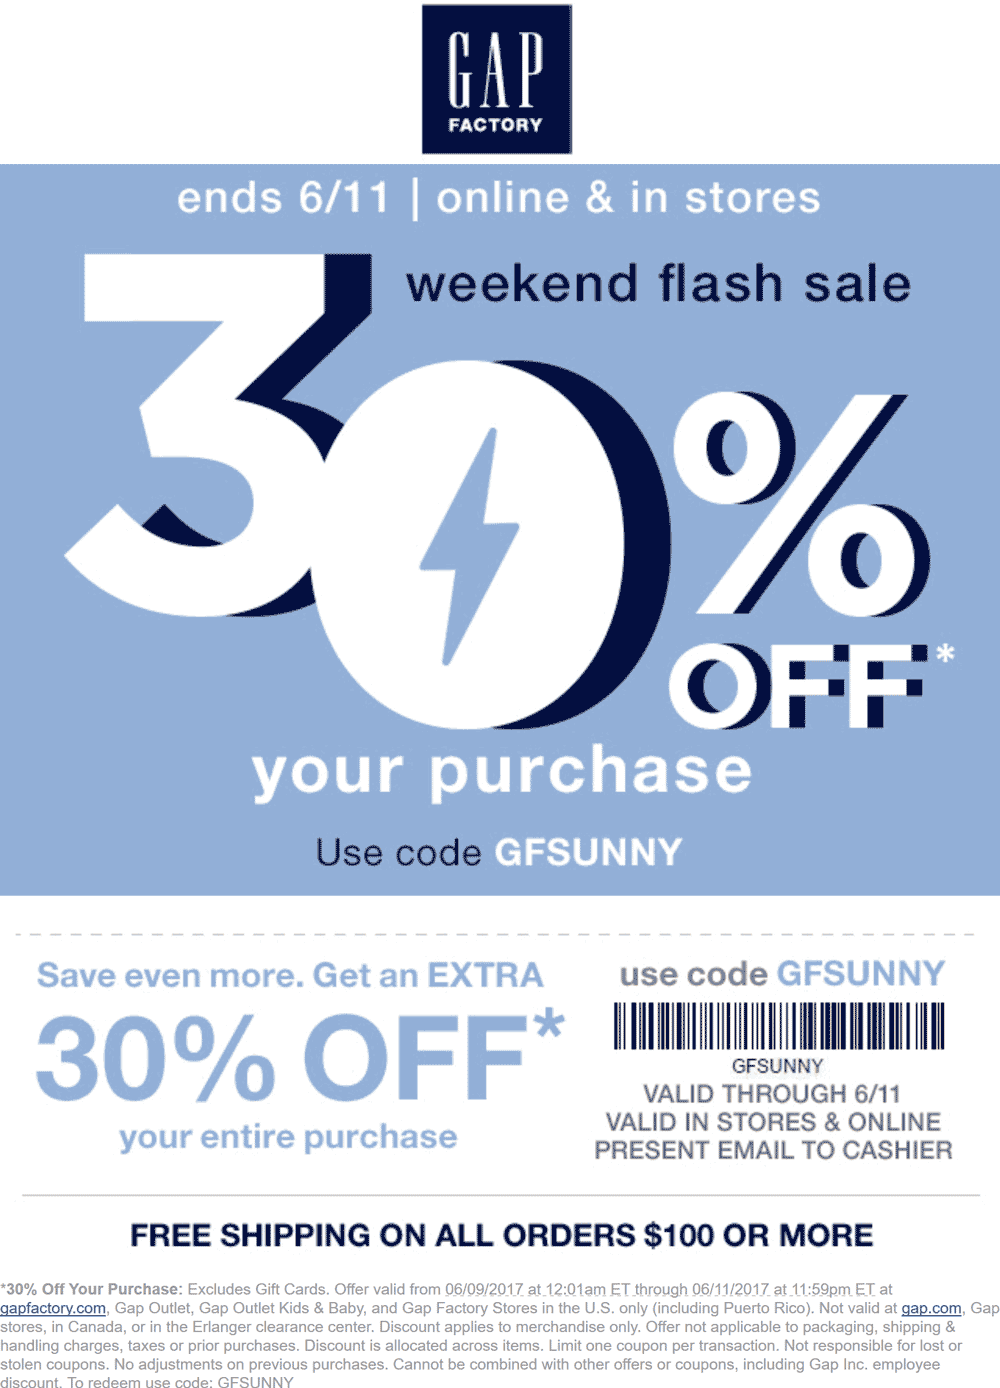 Pinned June 9th 30 Off At Gap Factory Or Online Via Promo Code Gfsunny Thecouponsapp Shopping Coupons Gap Coupons